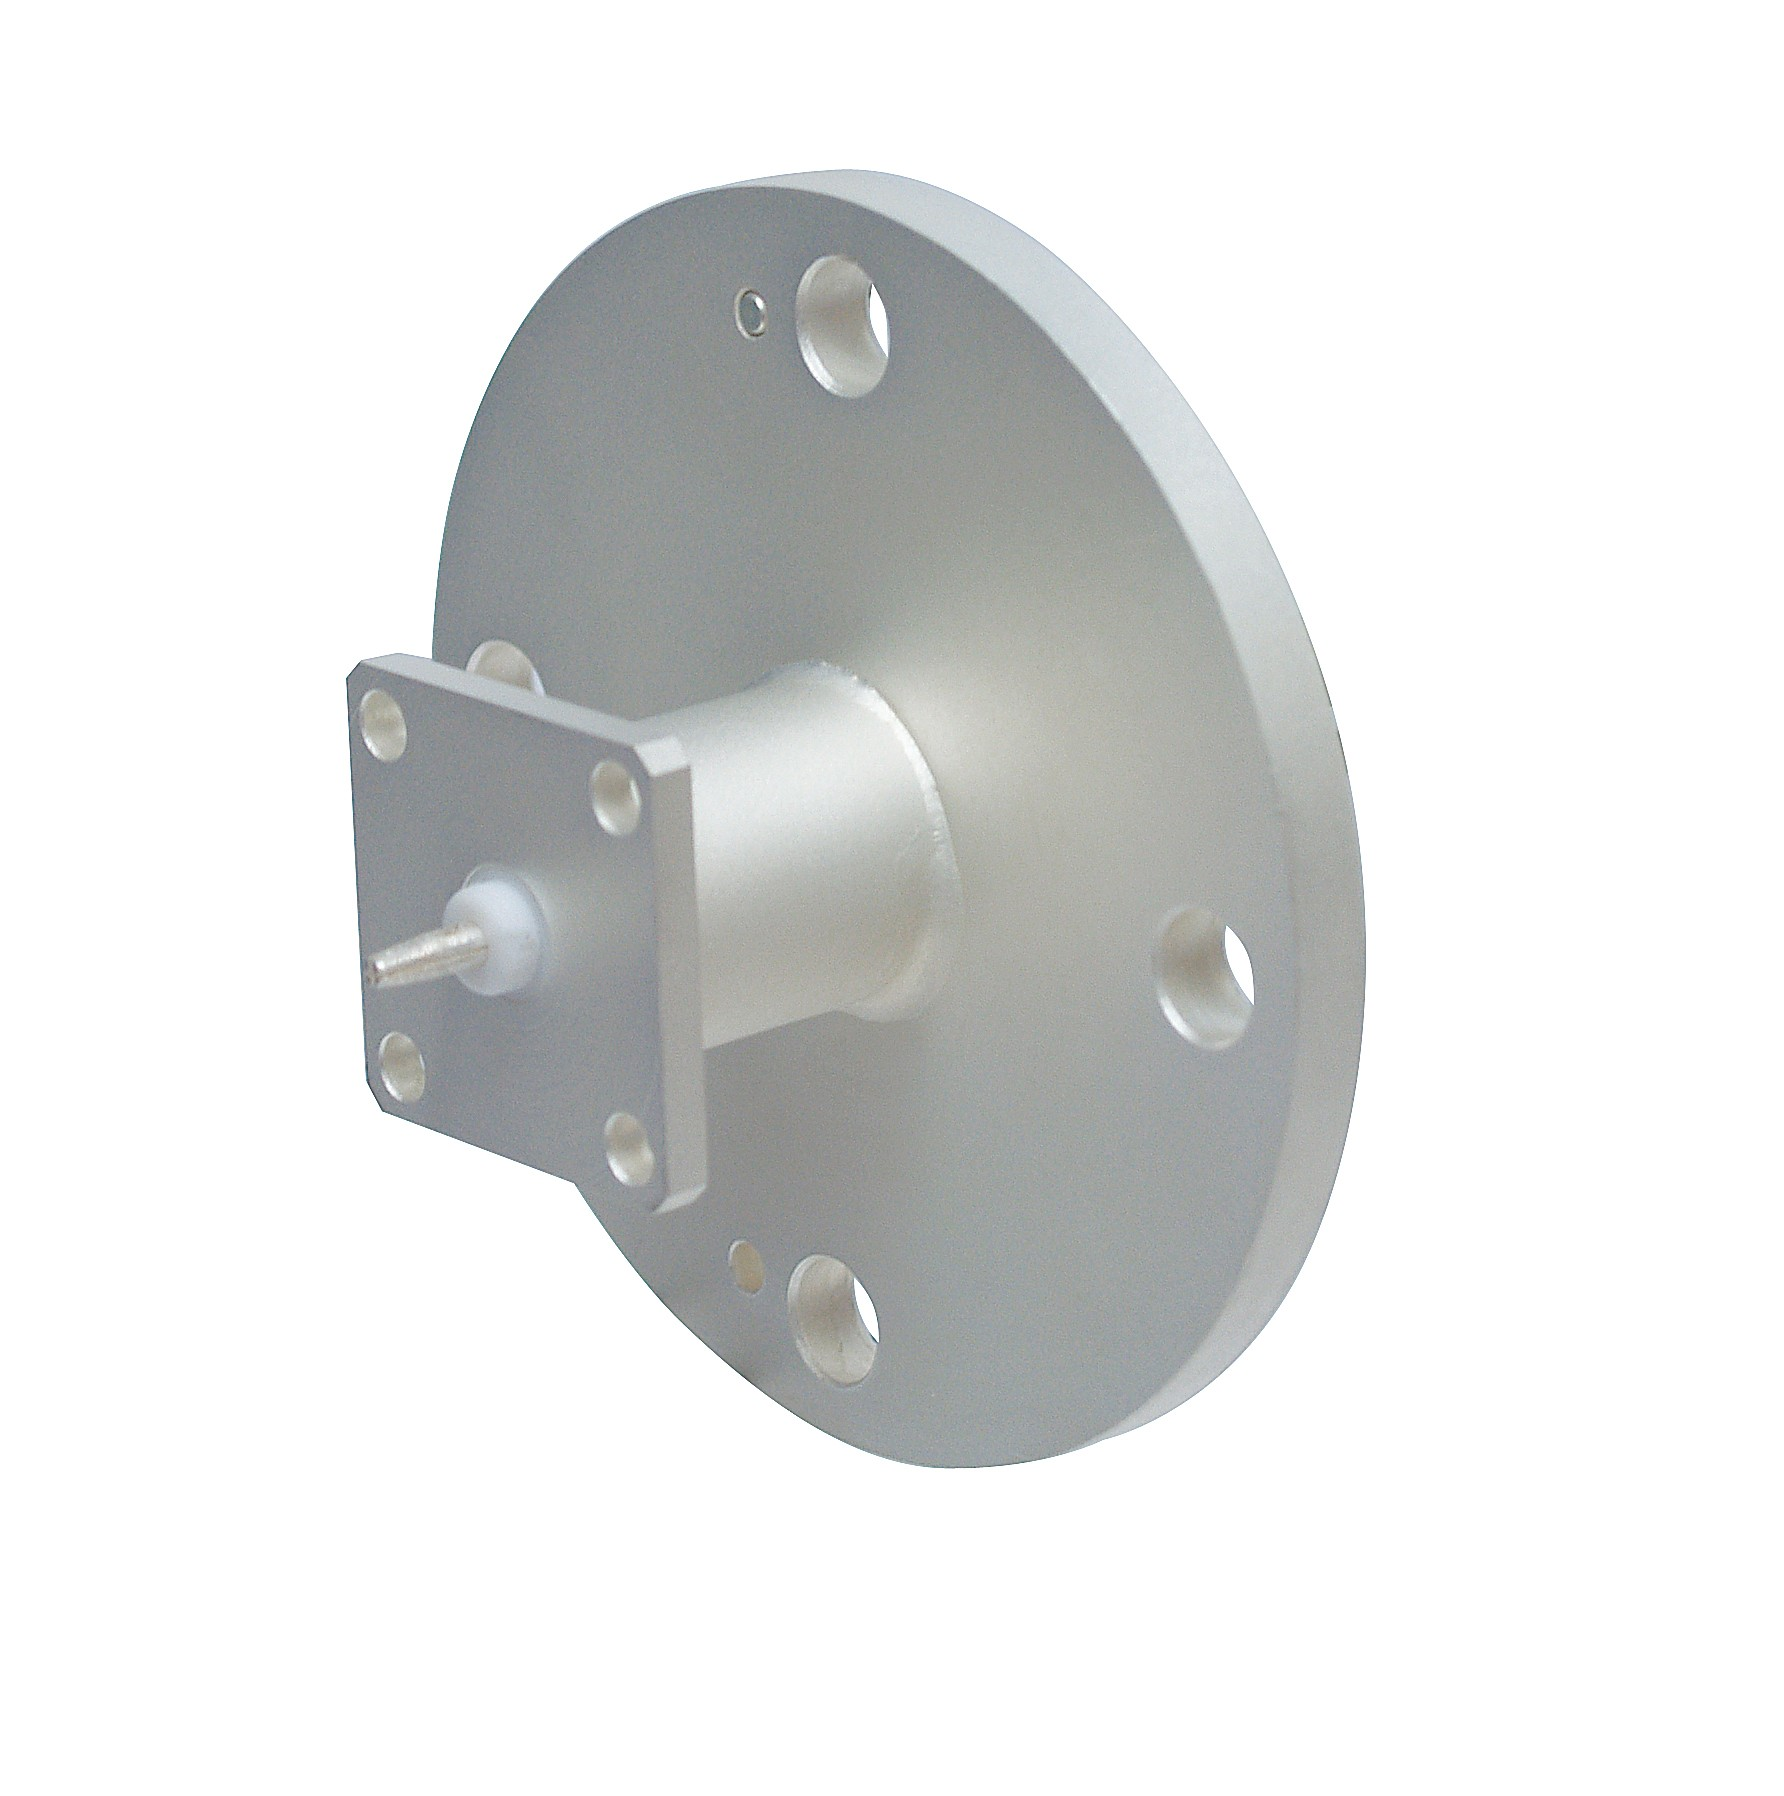 Rfp quot eia fixed flange qc connector for bird